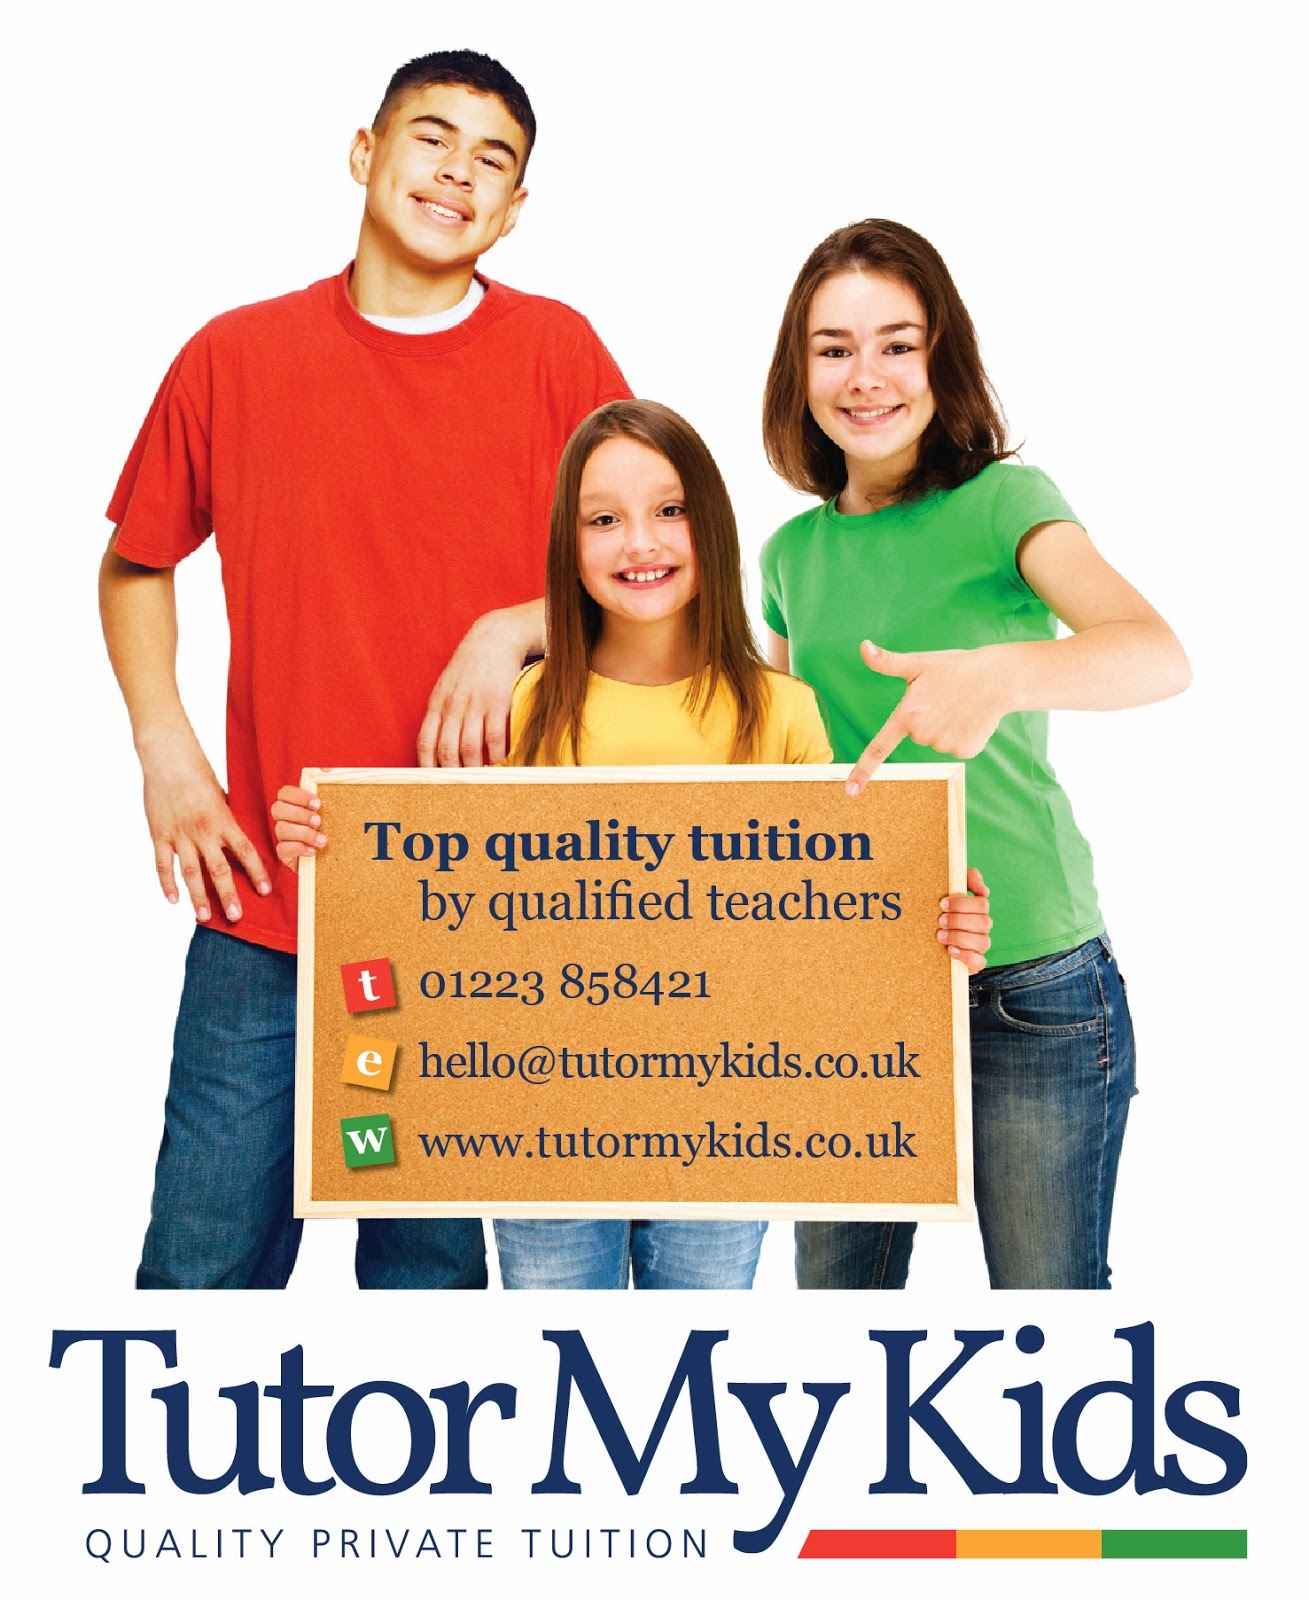 Private tutoring jobs